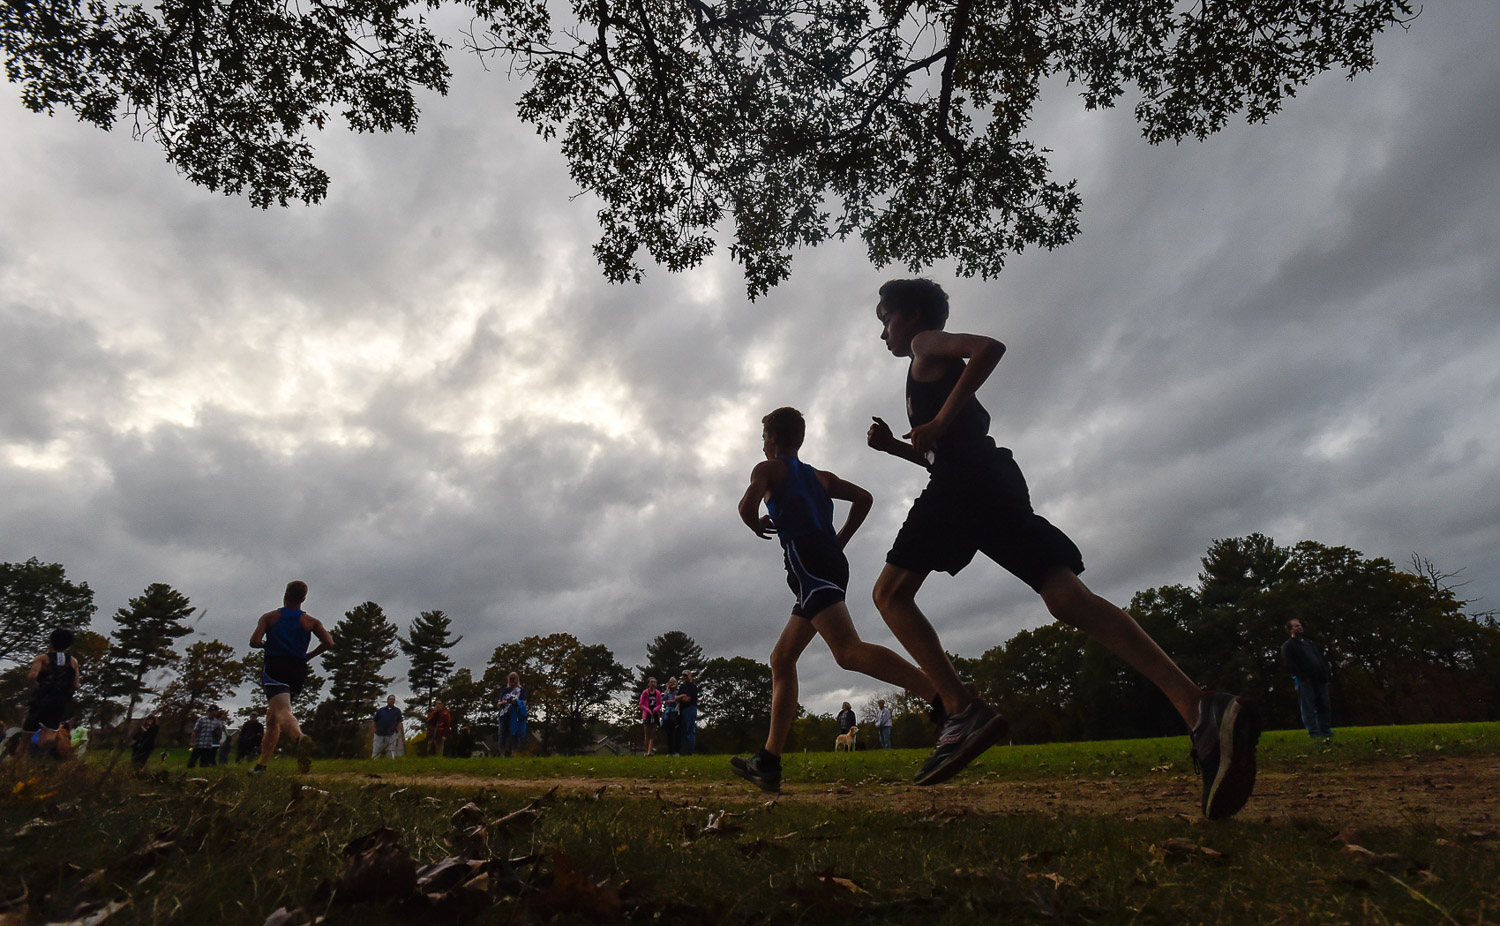 Nikon D4s, 1/1250 @ f/8, ISO 1400, 17-35mm  Georgetown and Hamilton cross country athletes compete in Hamilton during their cross country meet, Tuesday, Oct. 24, 2017.